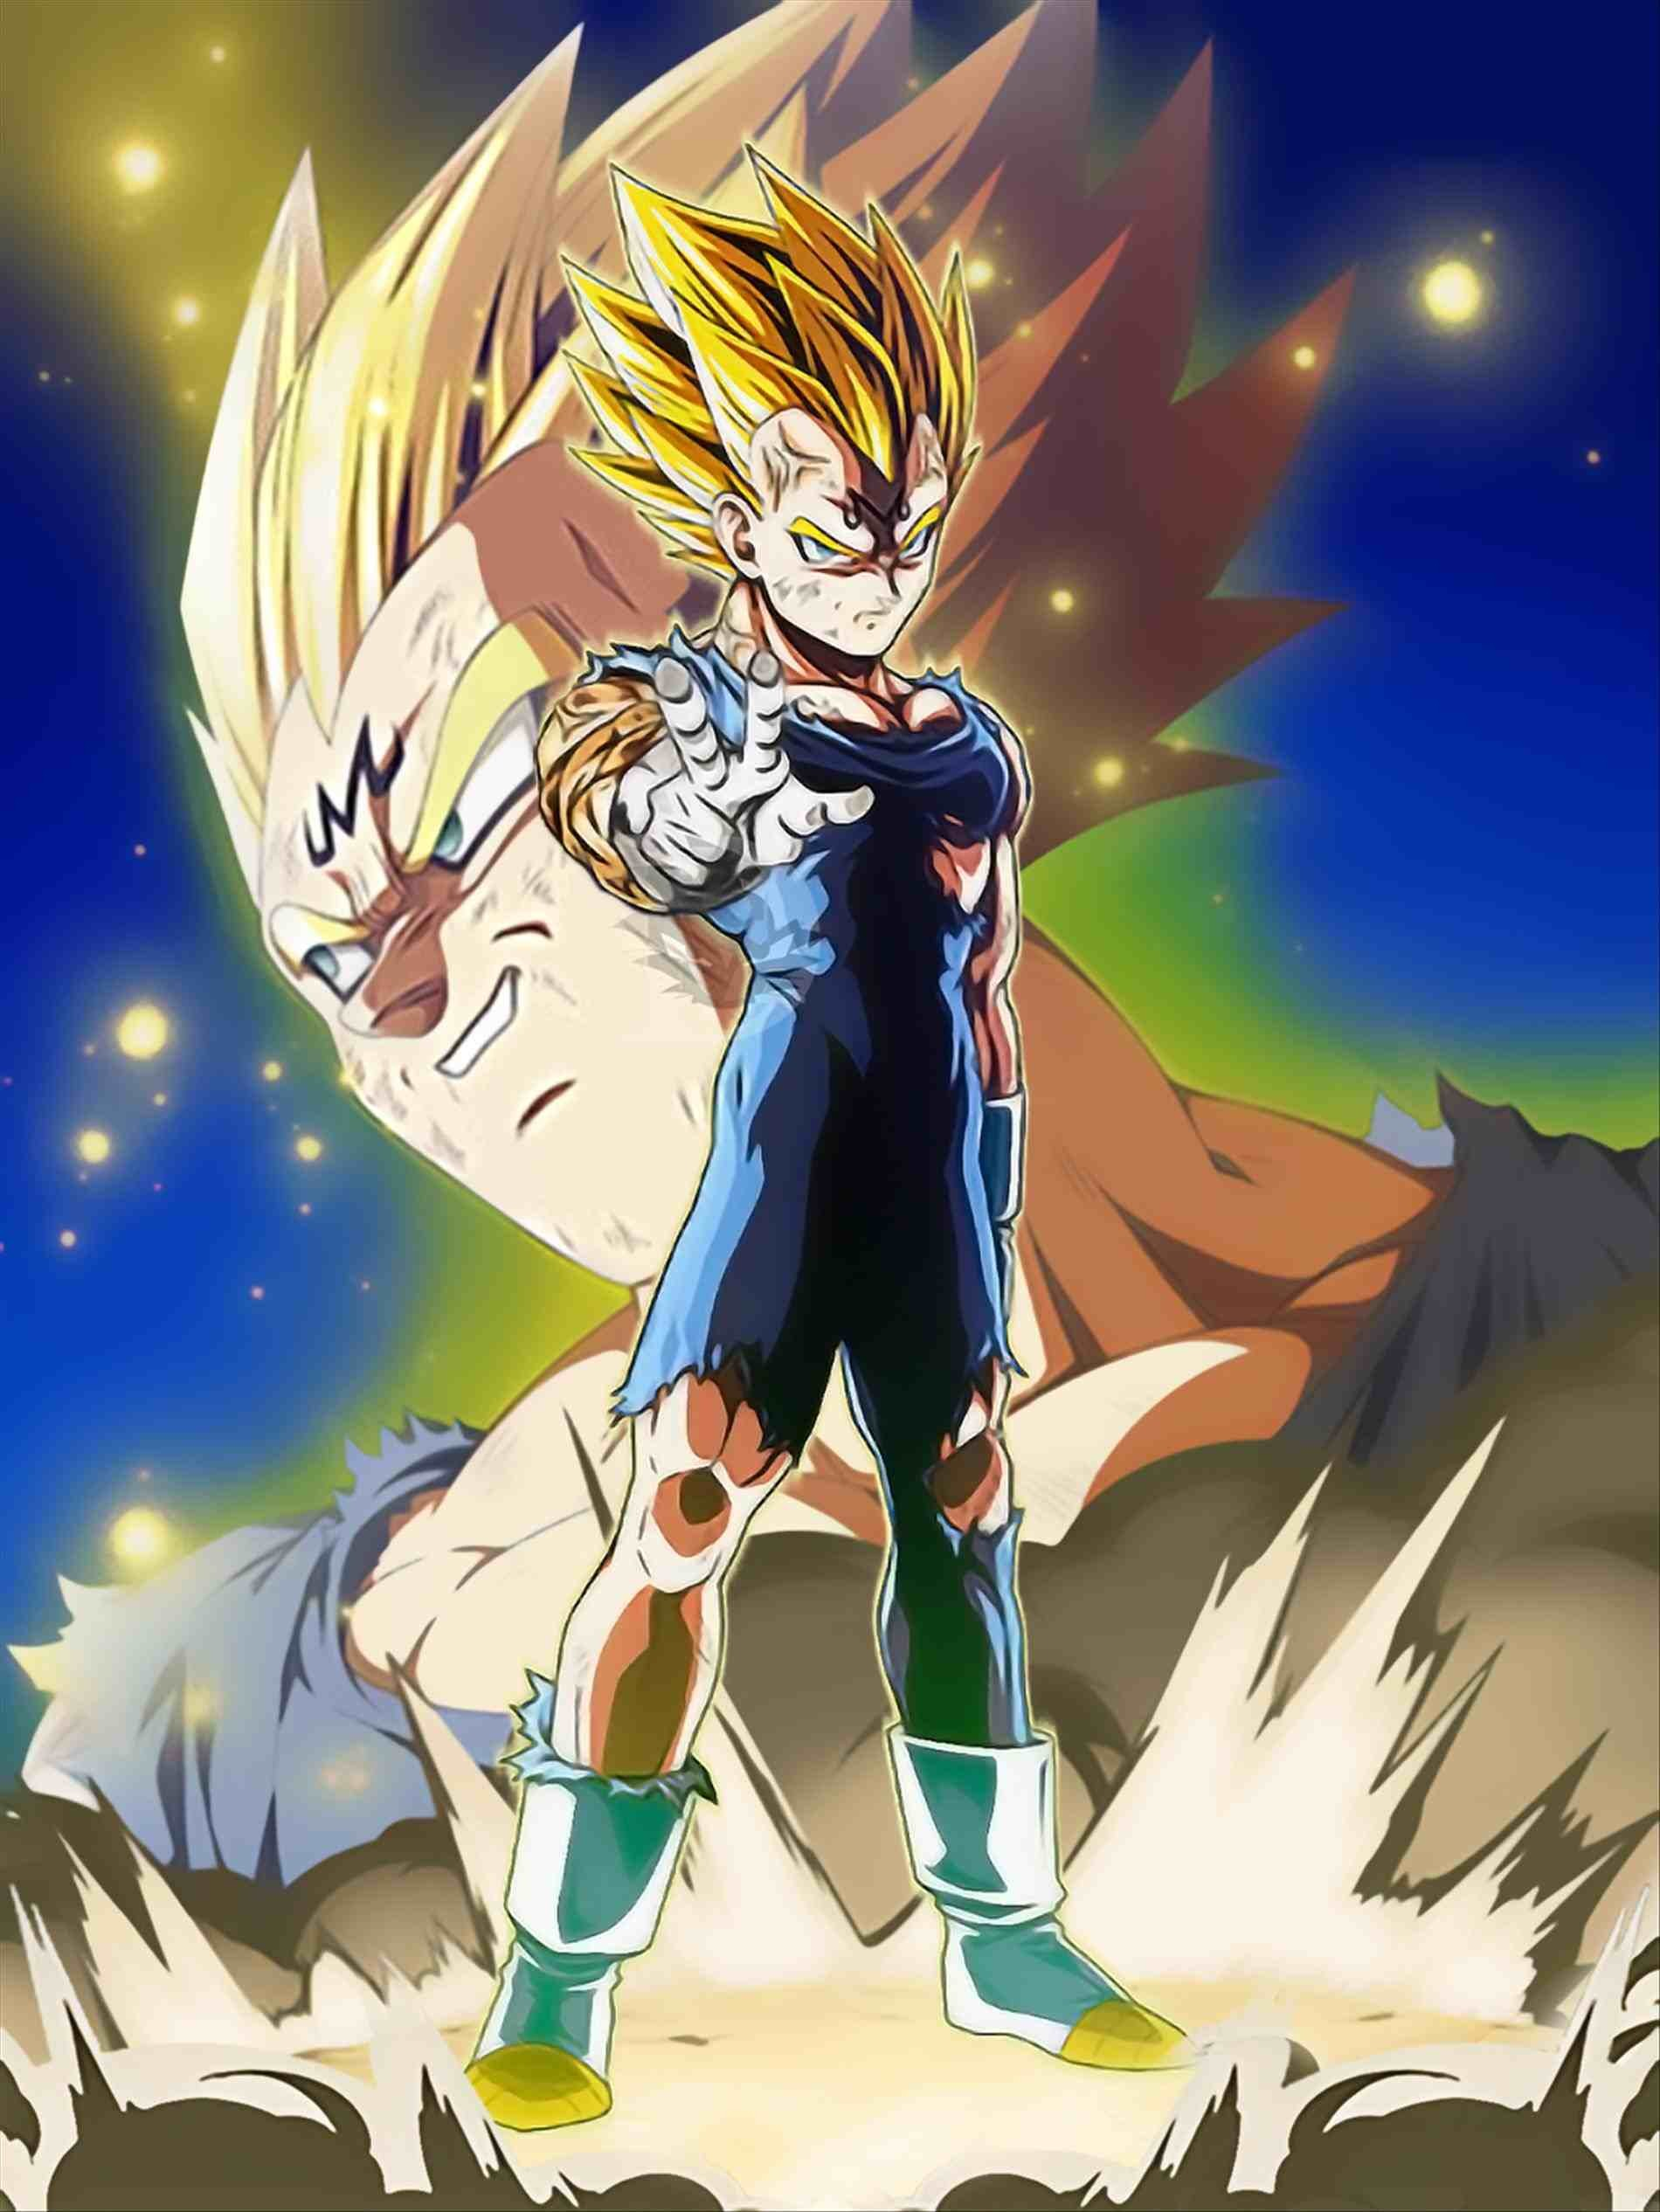 Majin vegeta wallpapers 66 background pictures - Dragon ball z majin vegeta wallpaper ...